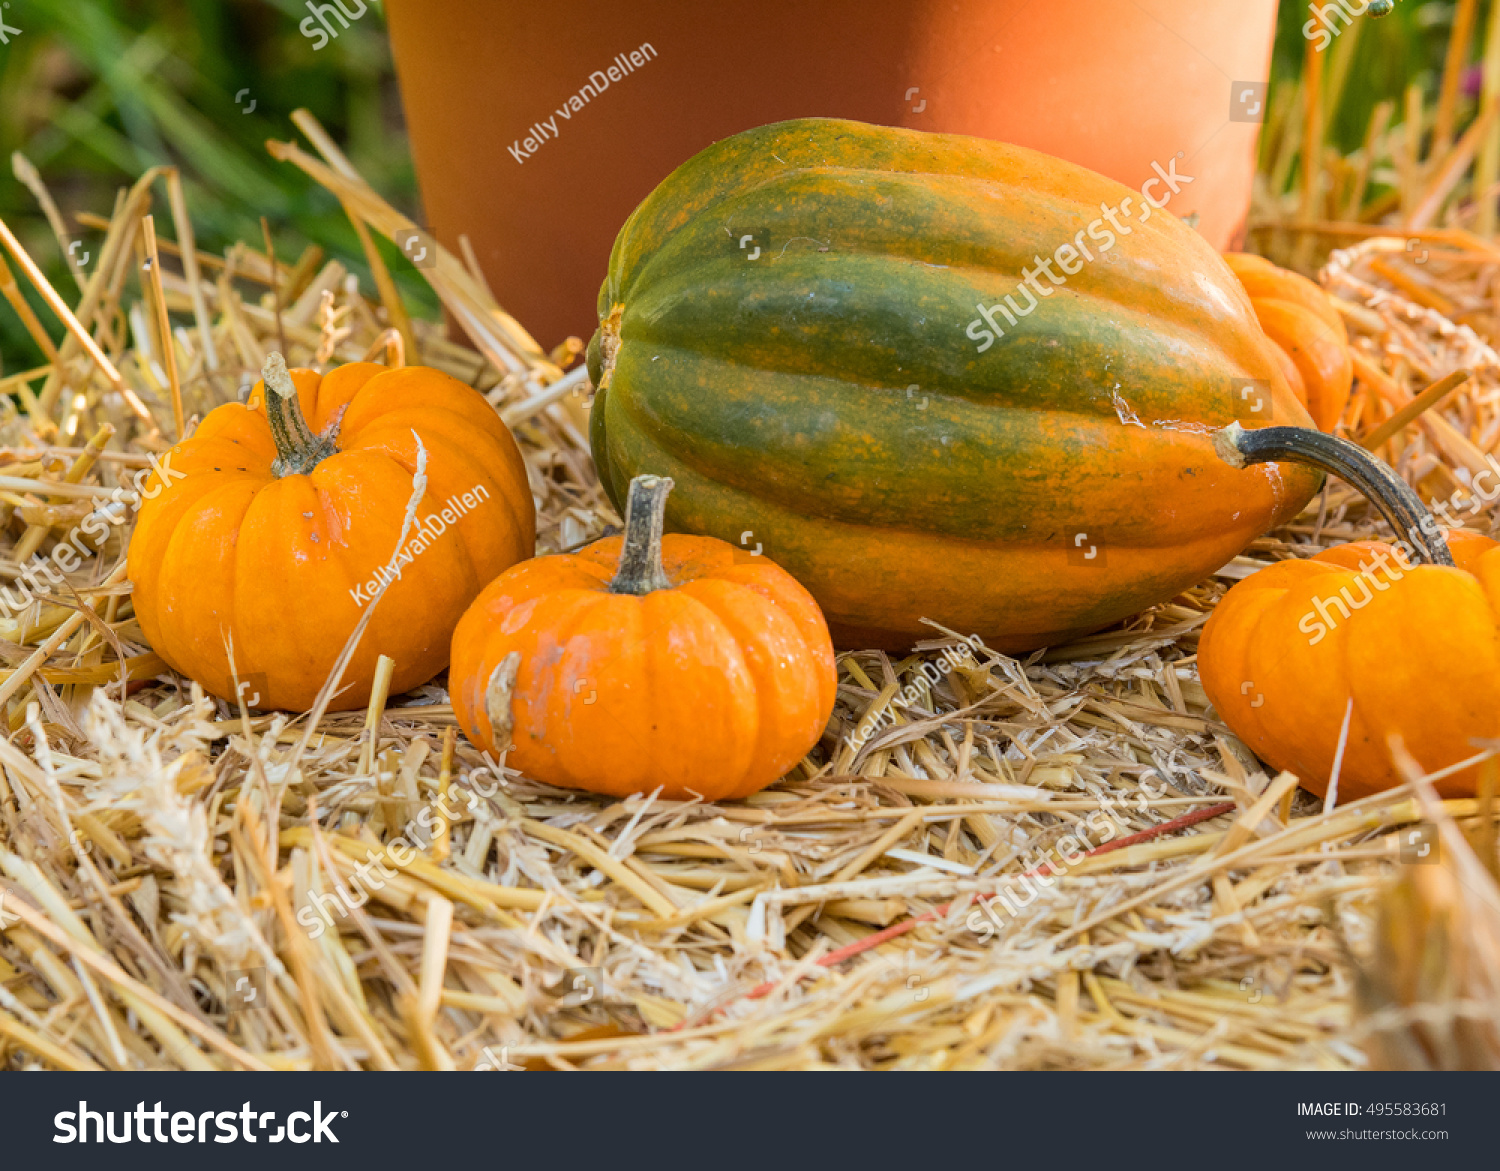 small pumpkins on hay bale large stock photo edit now 495583681